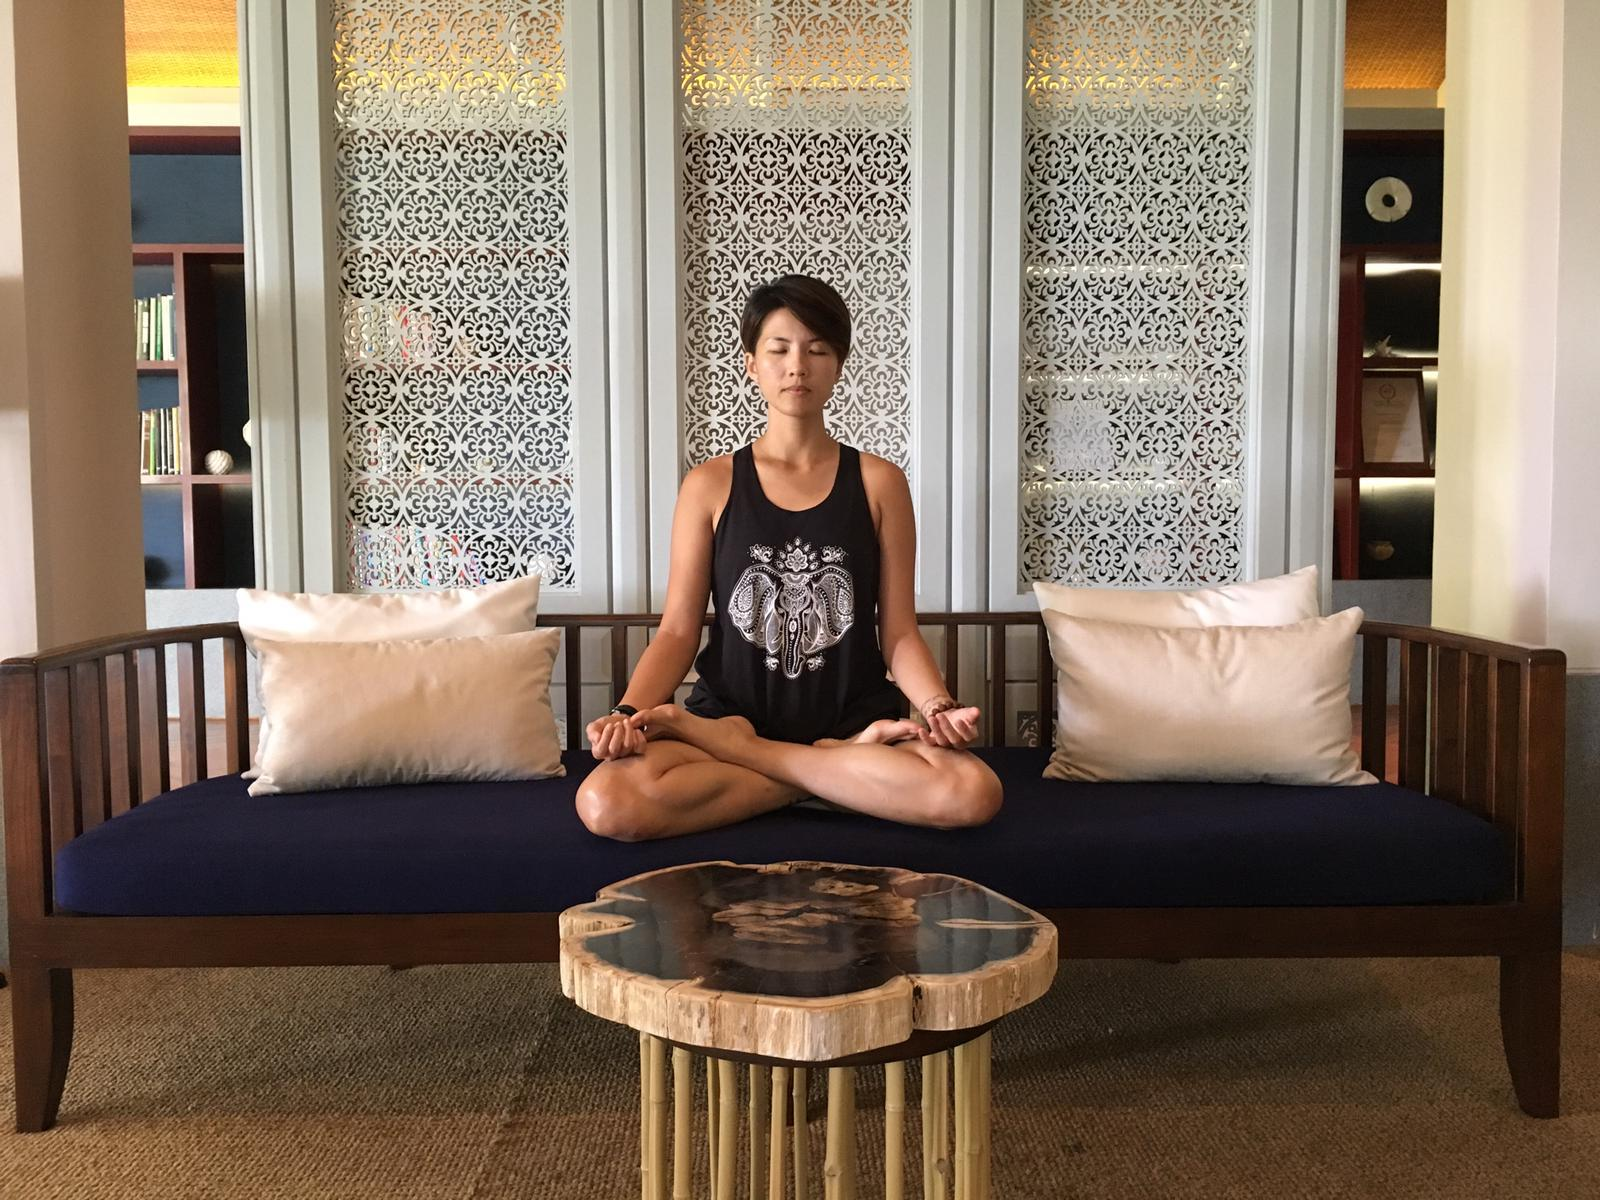 Danica Toh, Founder of Six Spac, meditating